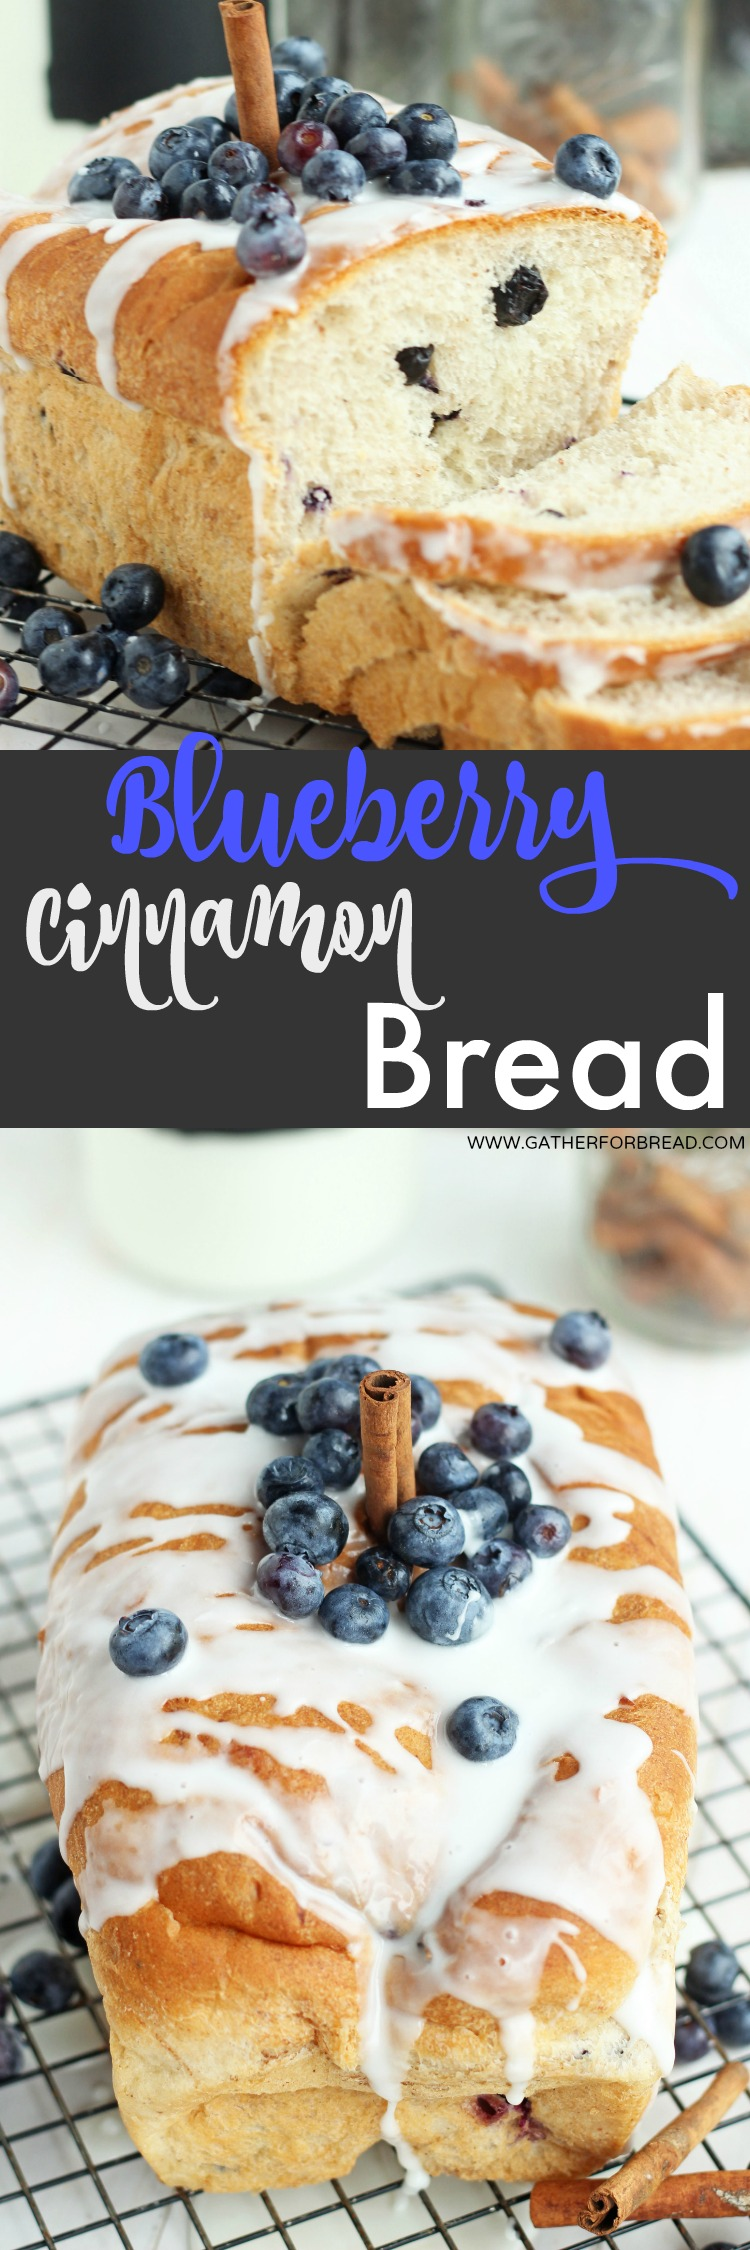 Blueberry Cinnamon Bread